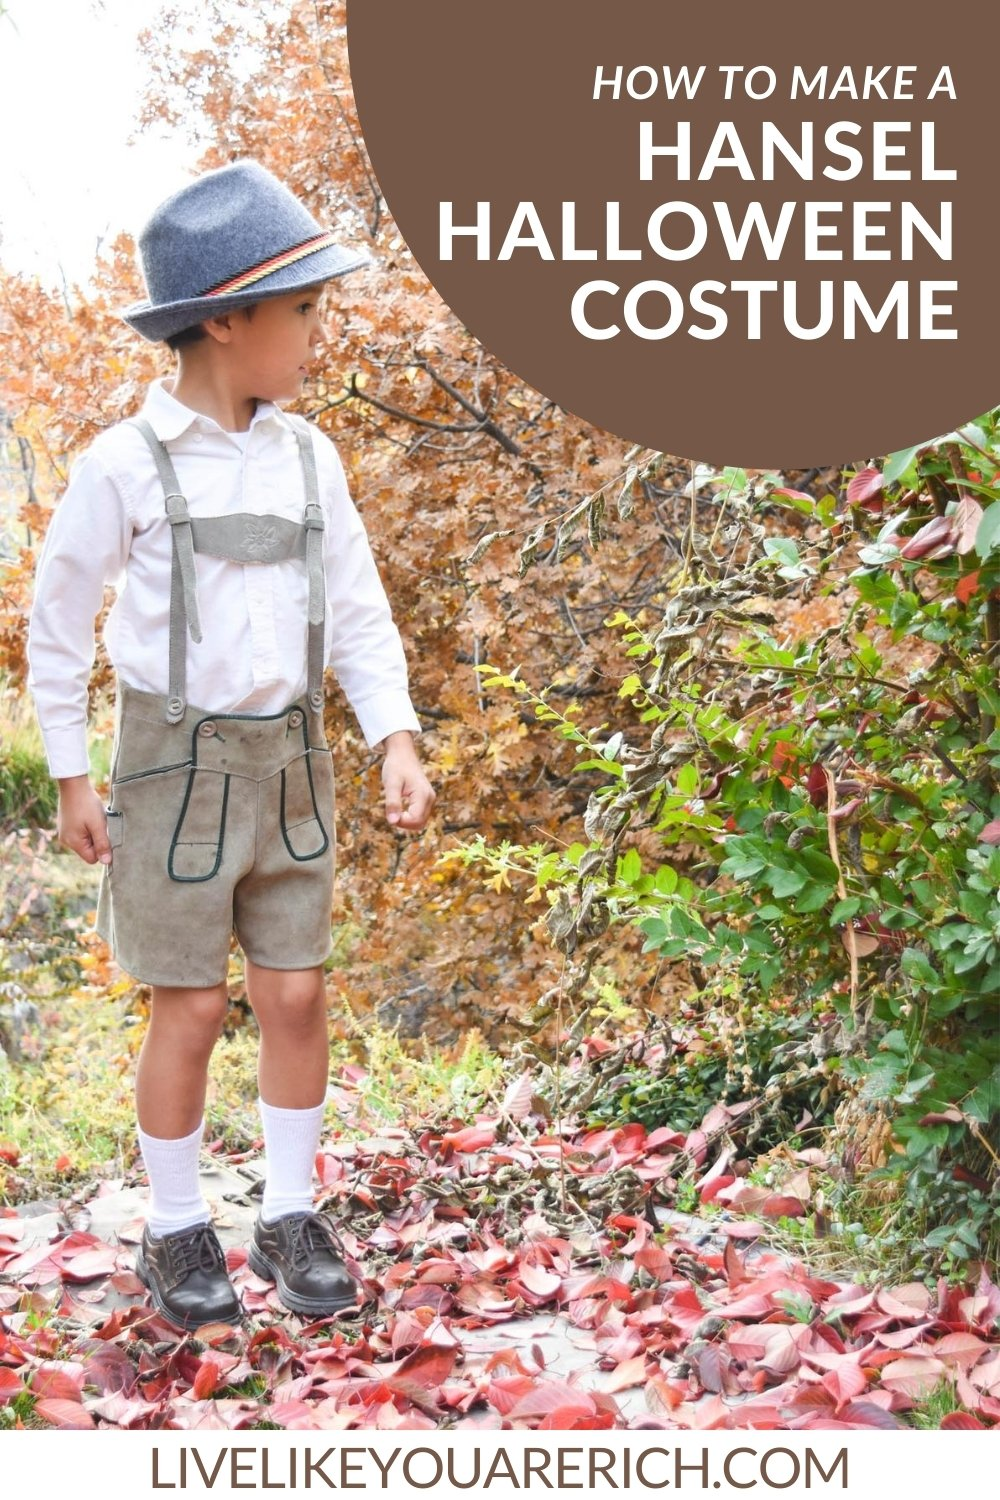 Having Live in Germany for over a year, I had fun making this Hansel costume from Grimm's Fairytales. It was an easy Halloween costume to put together.